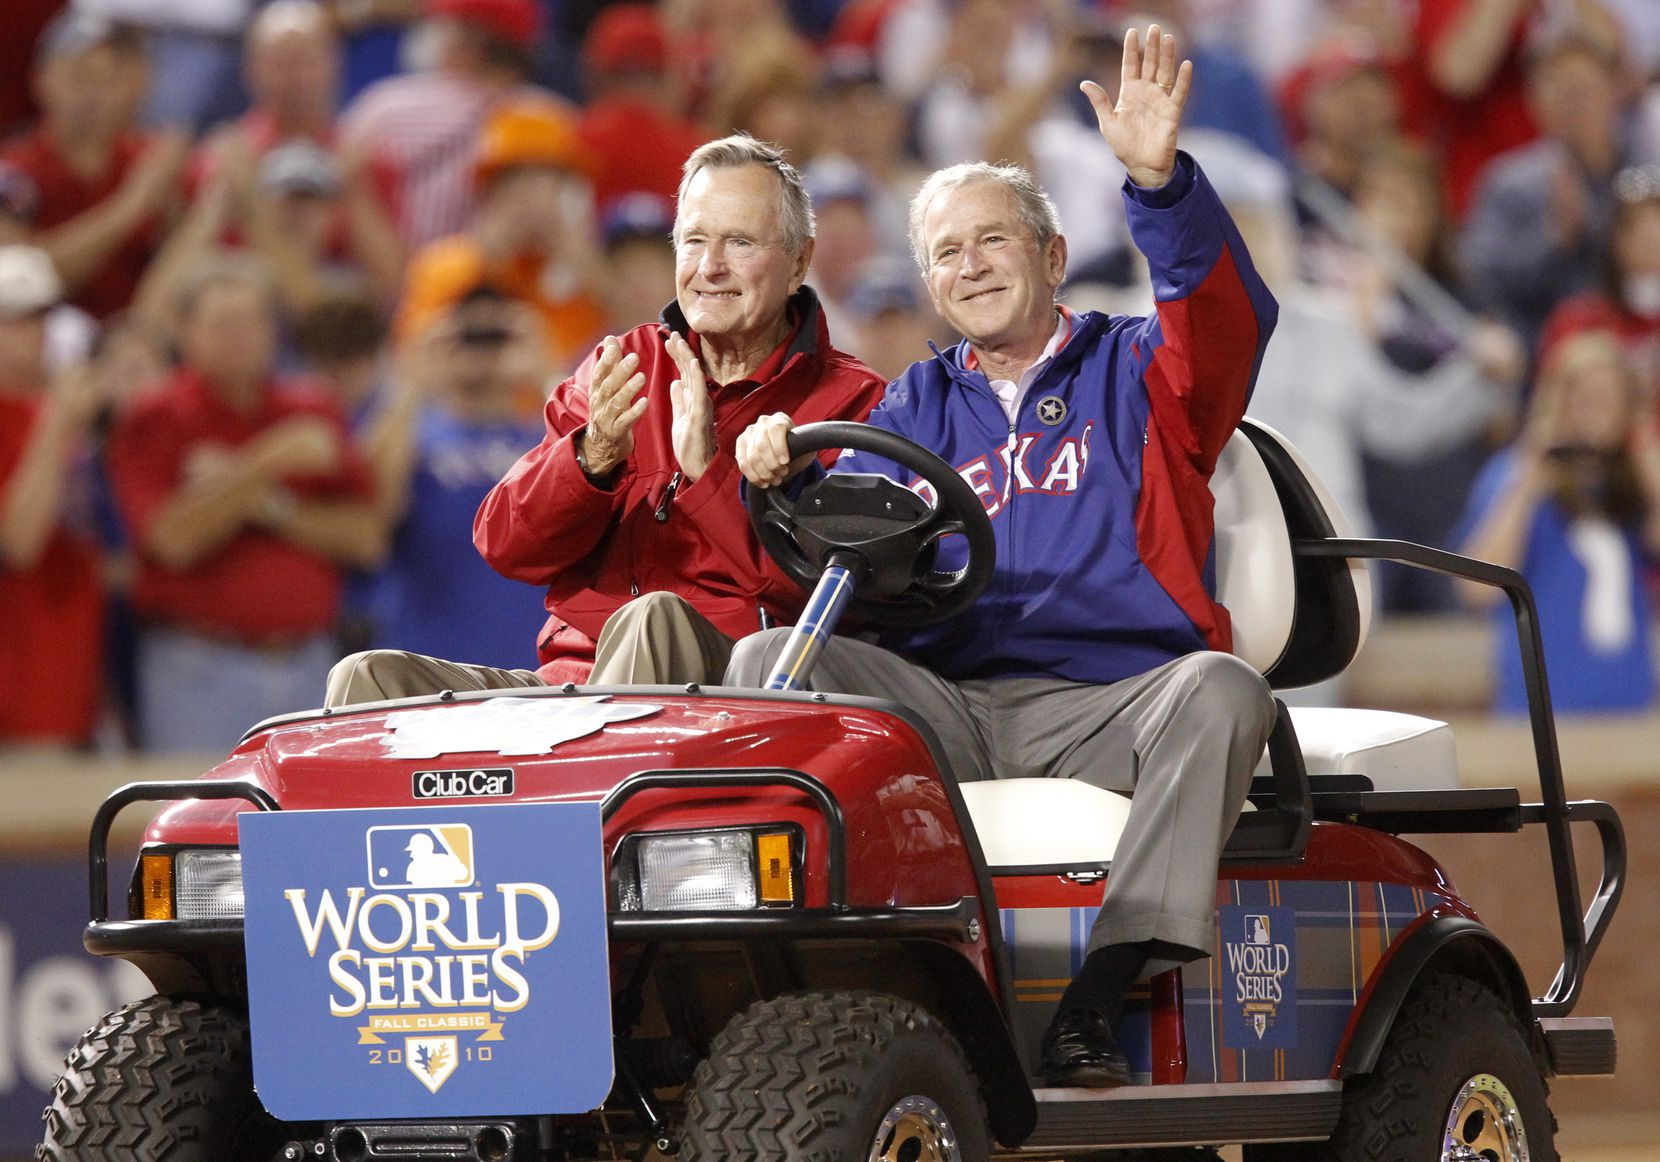 2010: Former Presidents George H.W. Bush and his son George W. Bush acknowledge the crowd before George W. Bush threw the ceremonial first pitch for Game 4 of the World Series between the San Francisco Giants and the Texas Rangers in Arlington.